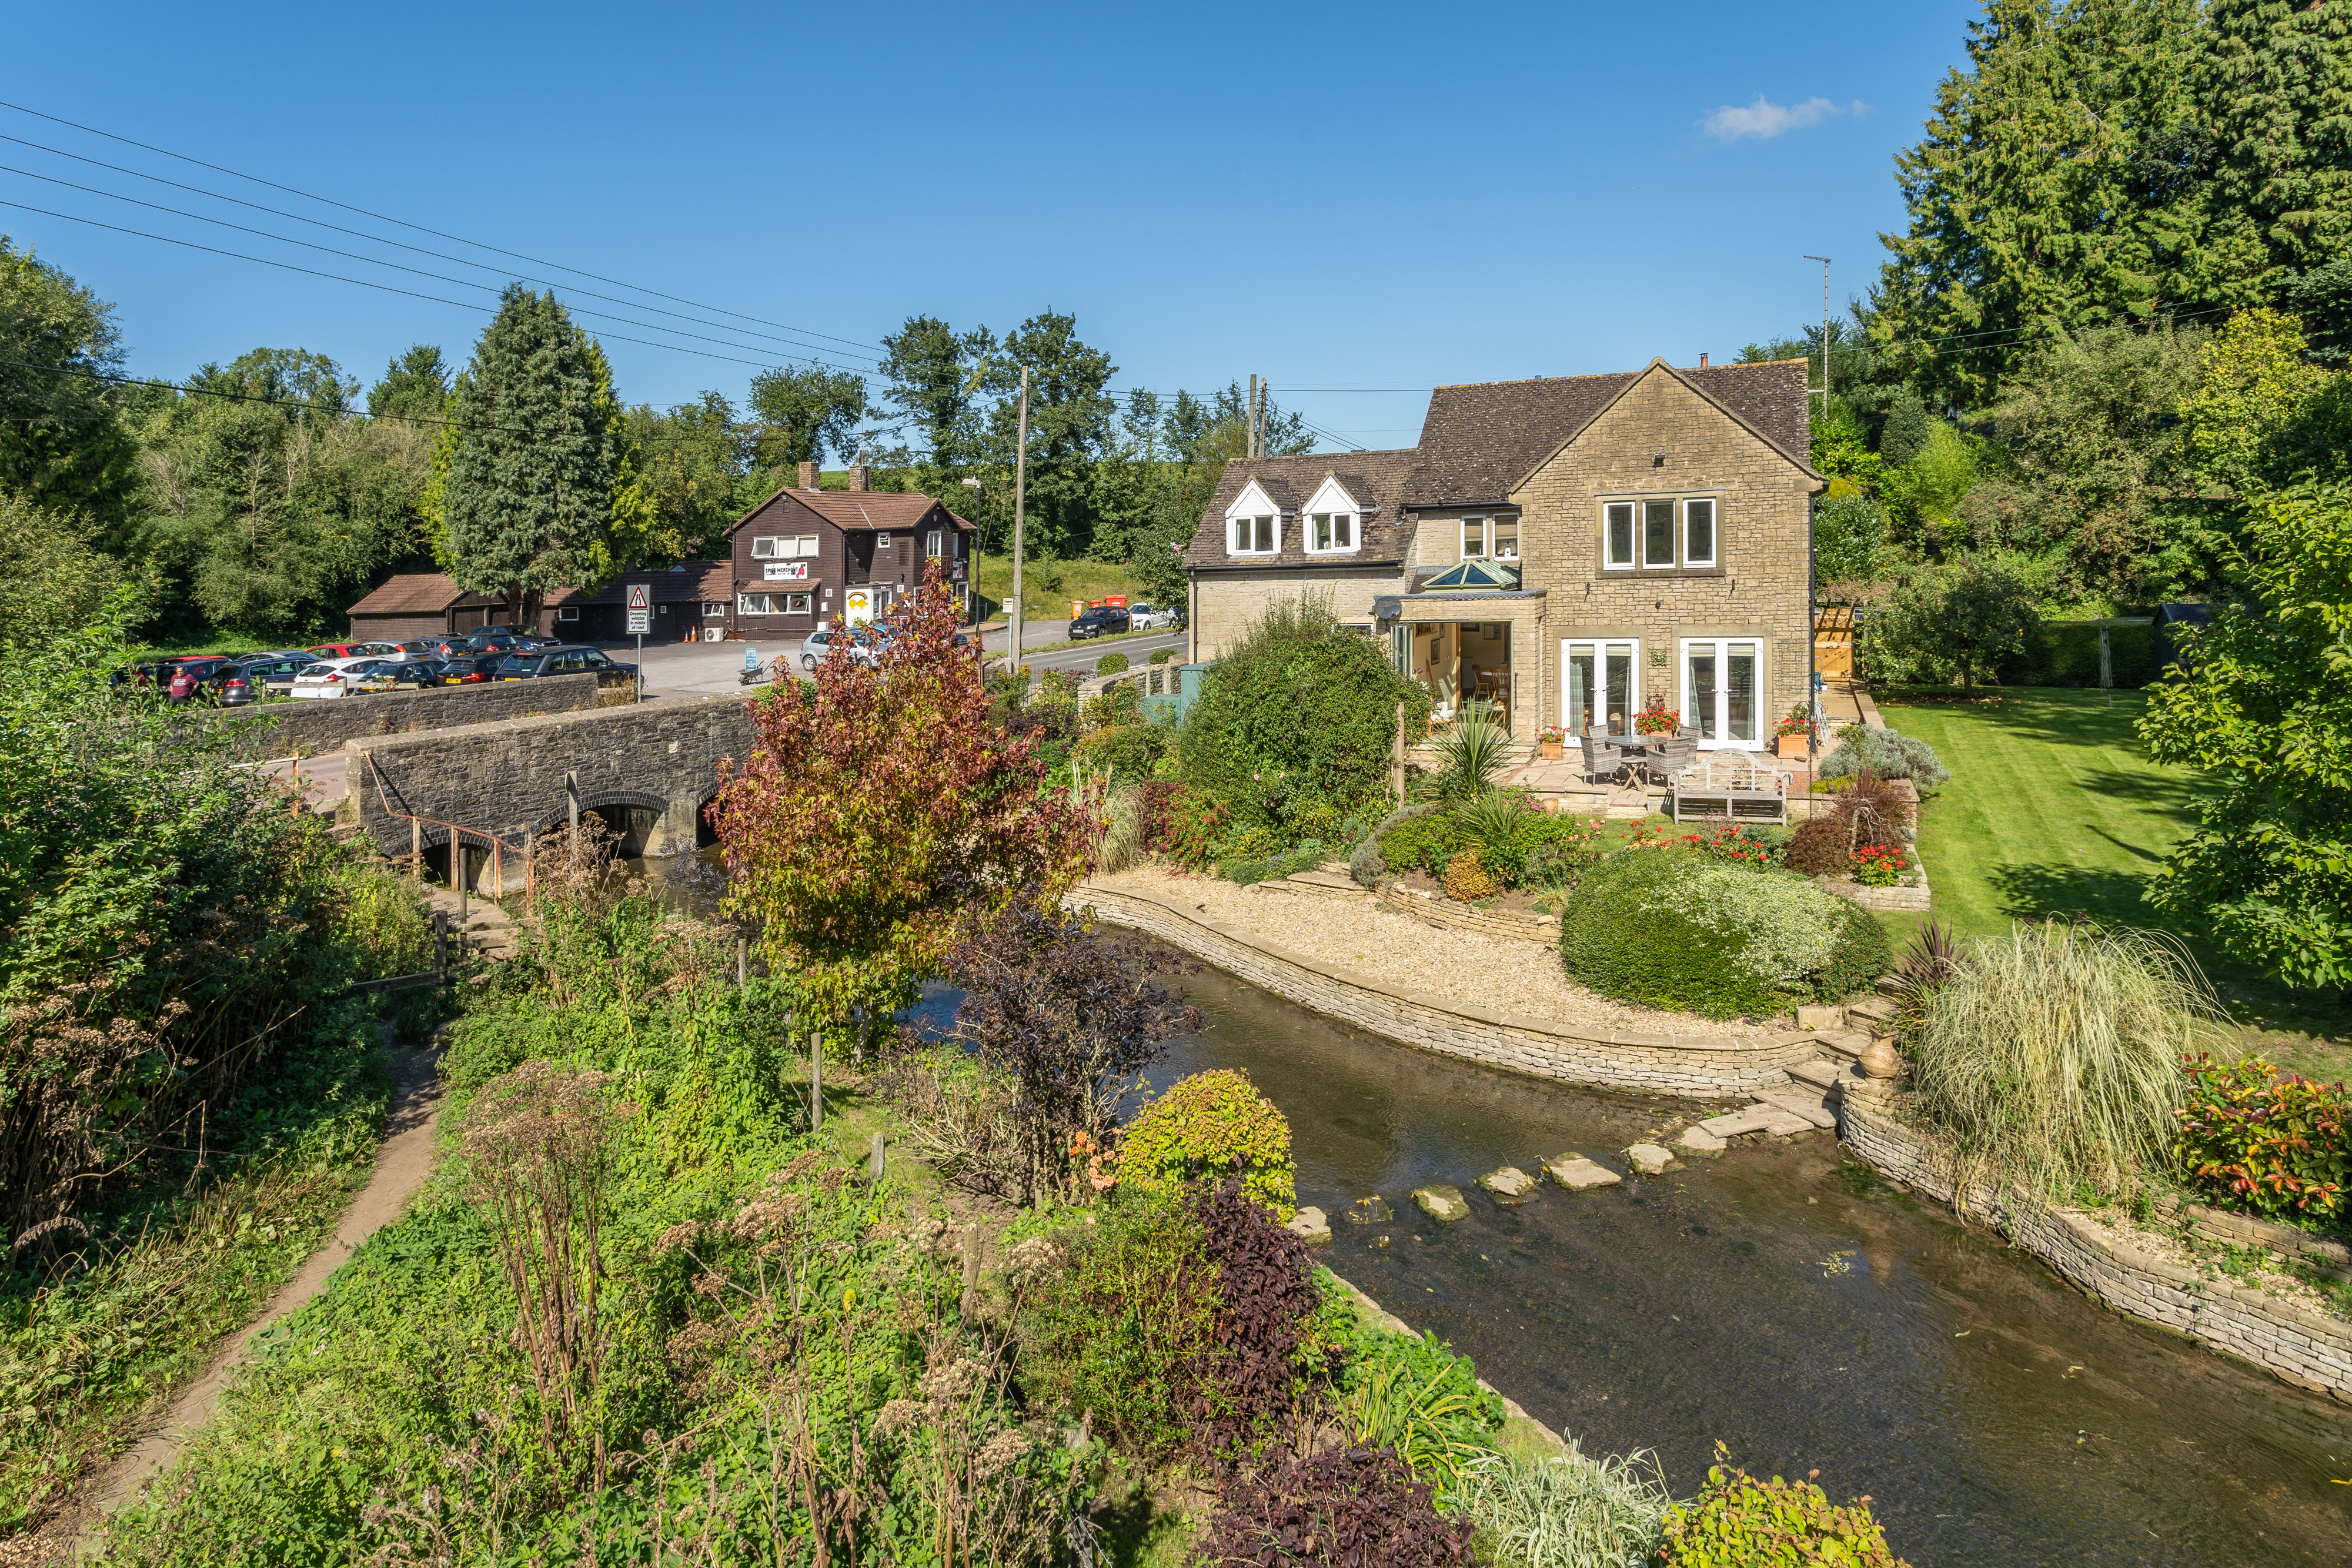 A riverside home located on the edge of the Cotswold Area of Outstanding Natural Beauty where the River Avon flows through the garden - Country Life